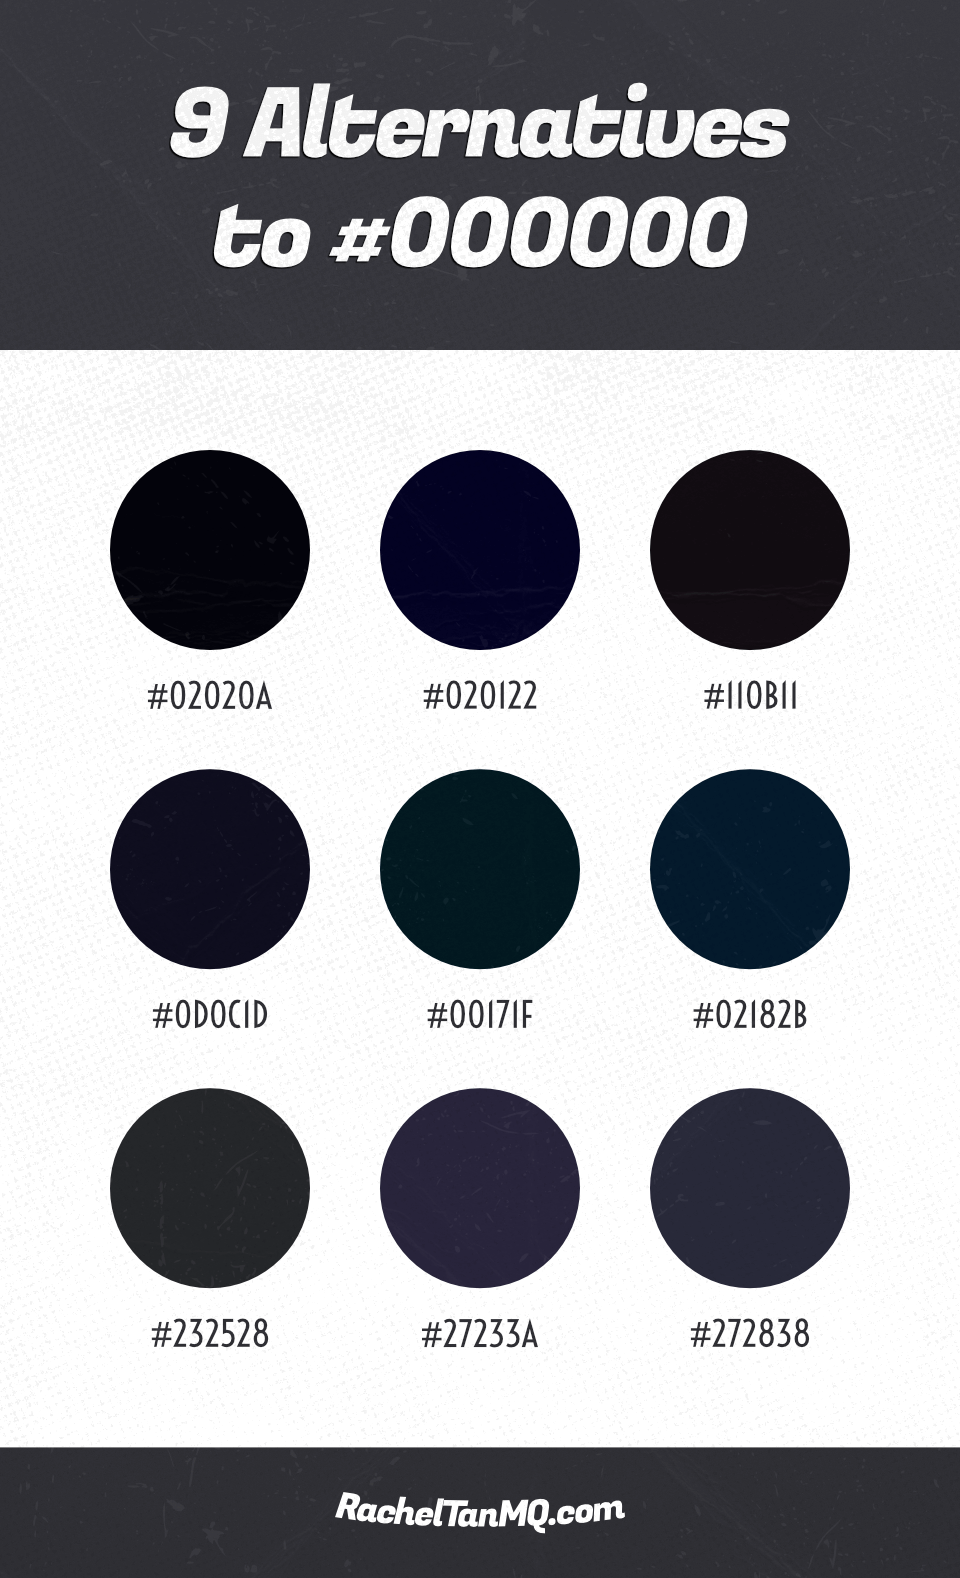 9 alternatives to using pure black (#000000) • color palette | color schemes | graphic design infographic | graphic design tips | graphic design tutorials | blog brand design tips | blog brand design tutorials | blog design tips | blog design tutorials #visualbranding #colorschemes #colorpalettes #blogdesign #brandingtips #bloggingtips #graphicdesigntips